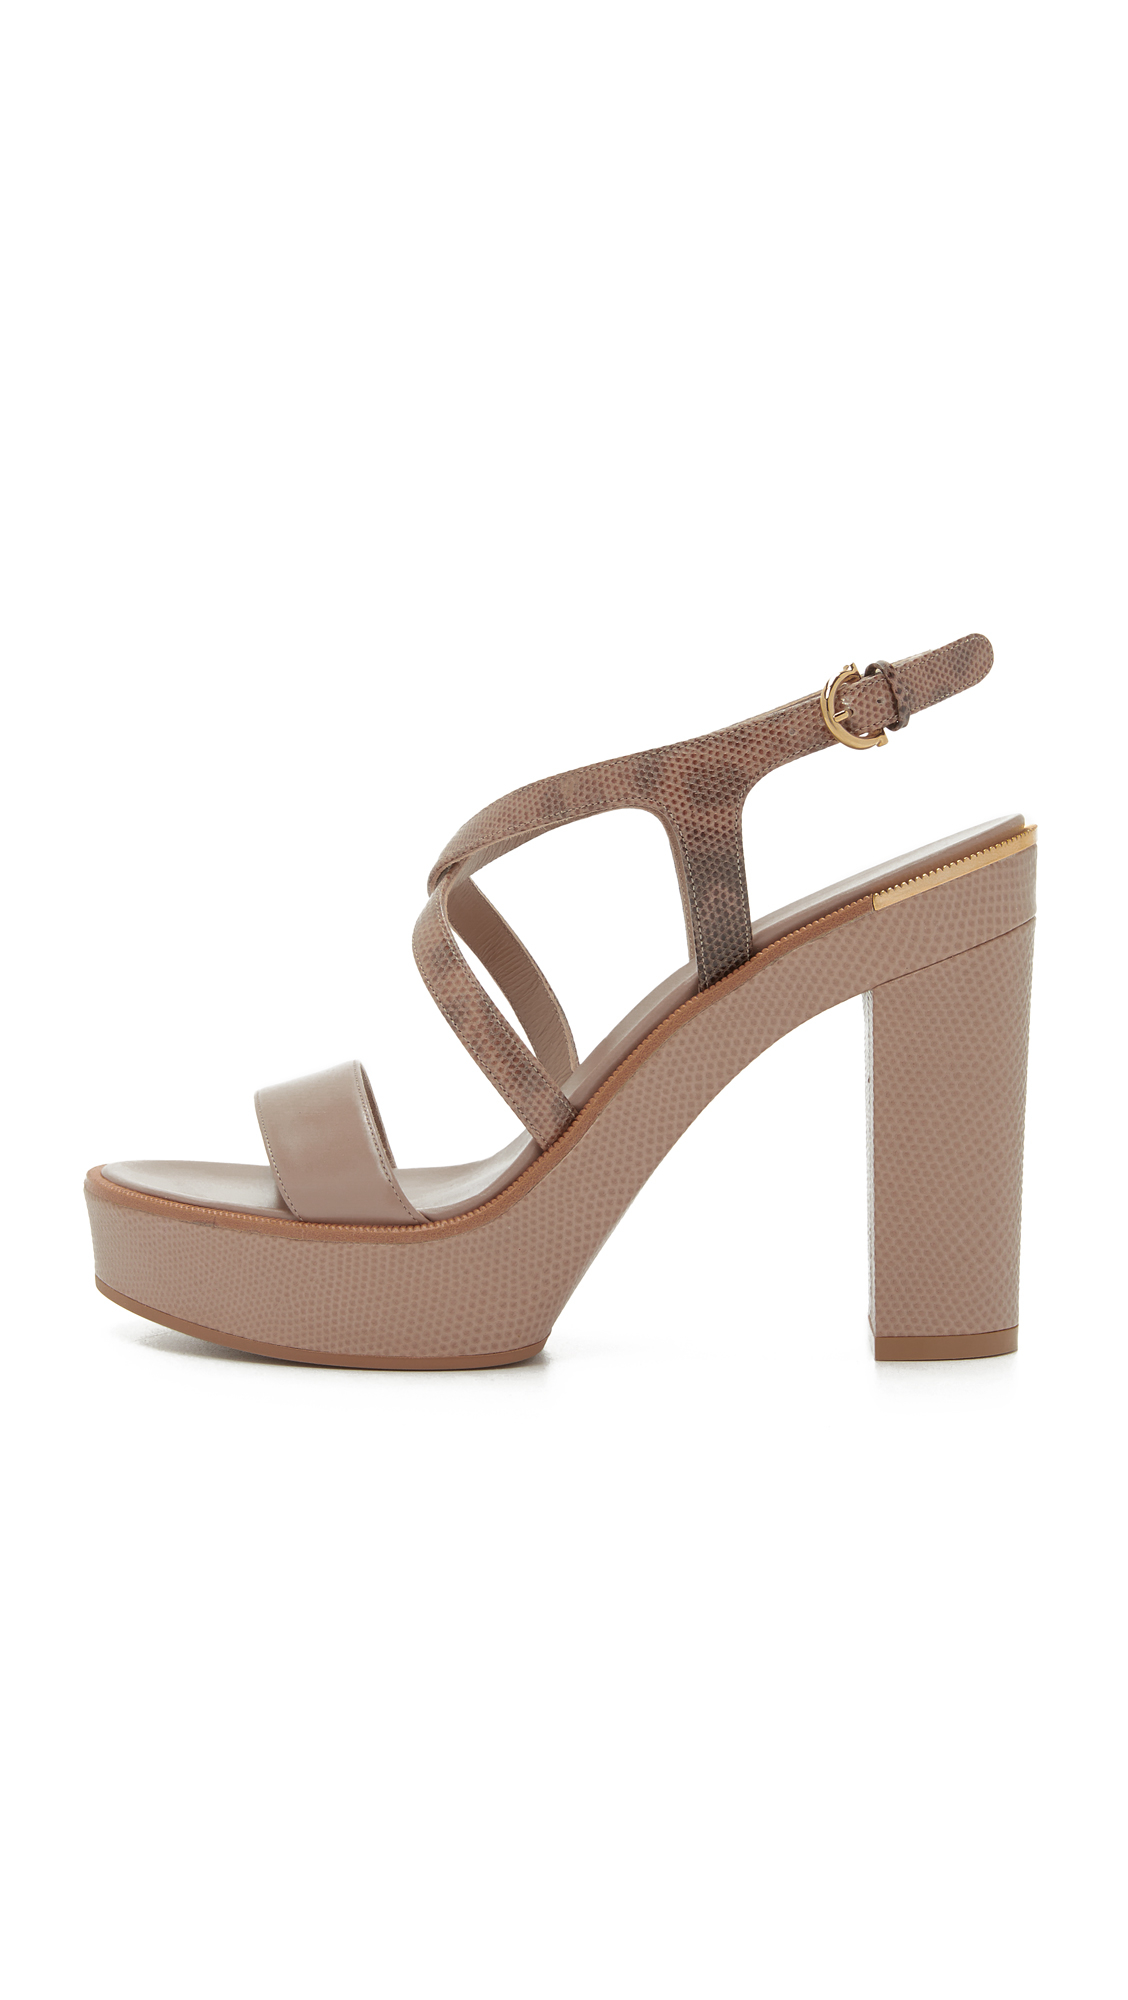 4faf6e56ae86 Ferragamo Gina Platform Sandals in Brown - Lyst